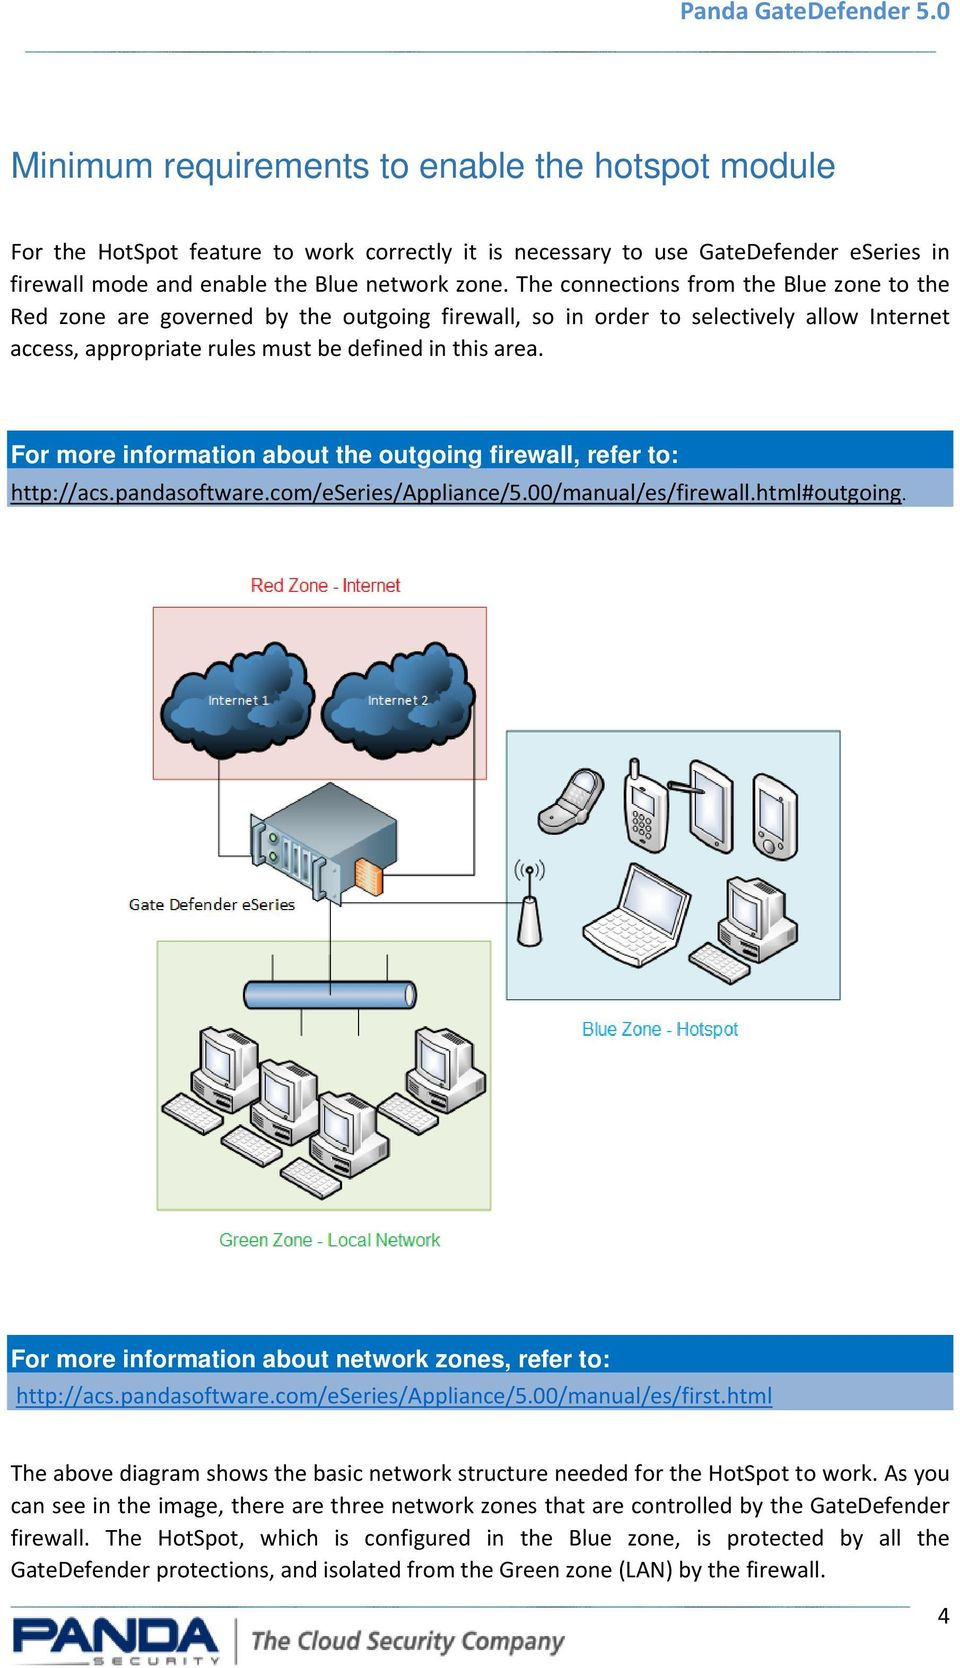 For more information about the outgoing firewall, refer to: http://acs.pandasoftware.com/eseries/appliance/5.00/manual/es/firewall.html#outgoing.